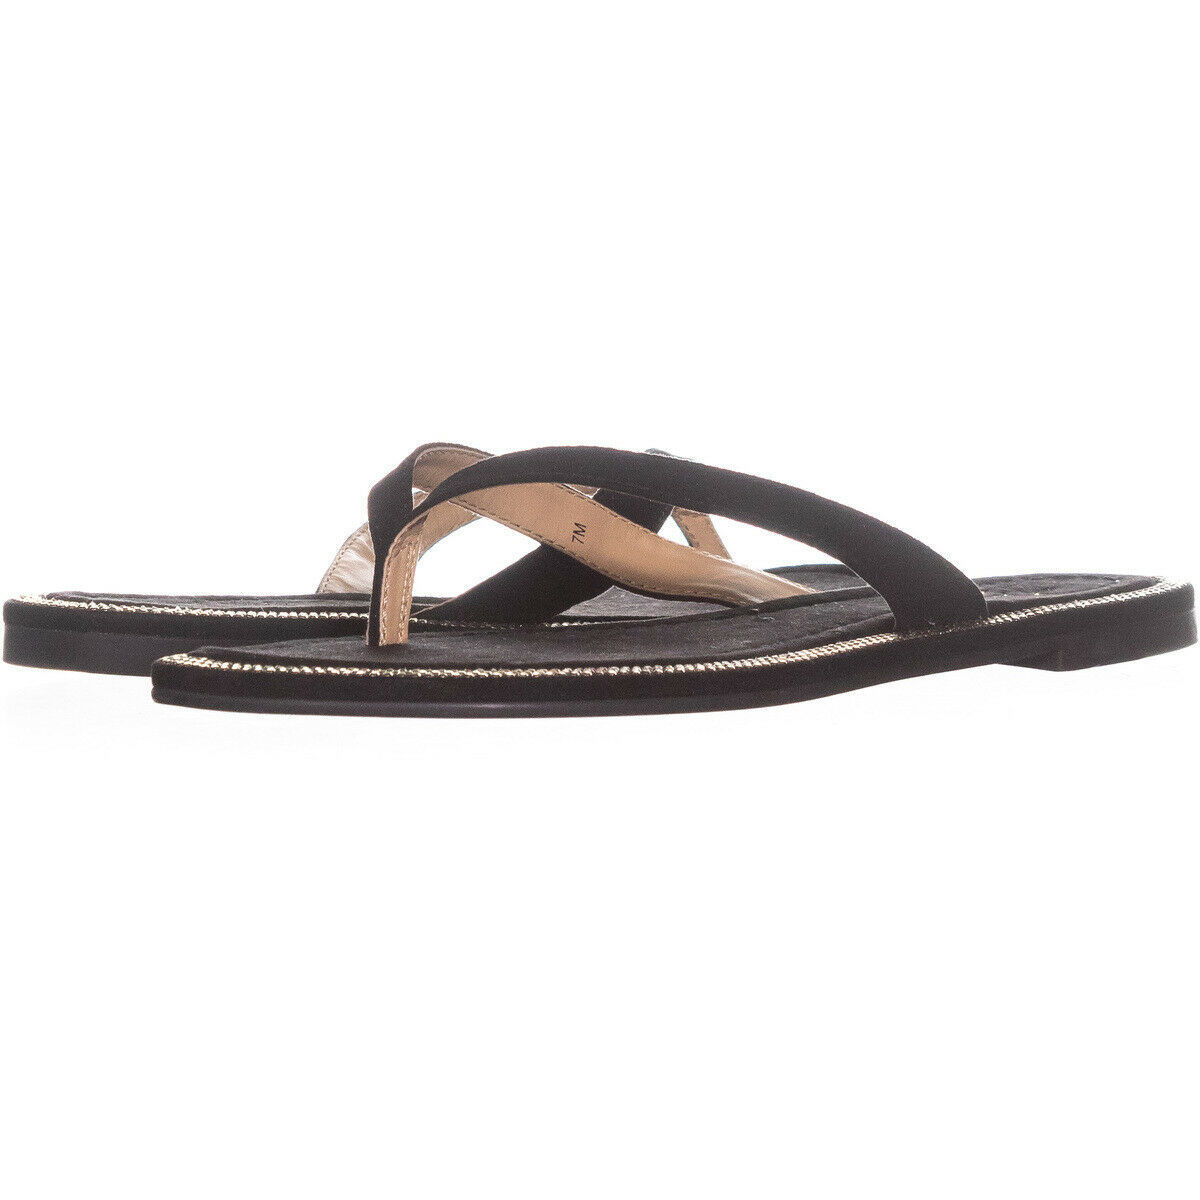 Primary image for Thalia Sodi Beda Flat Flip Flop Sandals 202, Black, 7 US